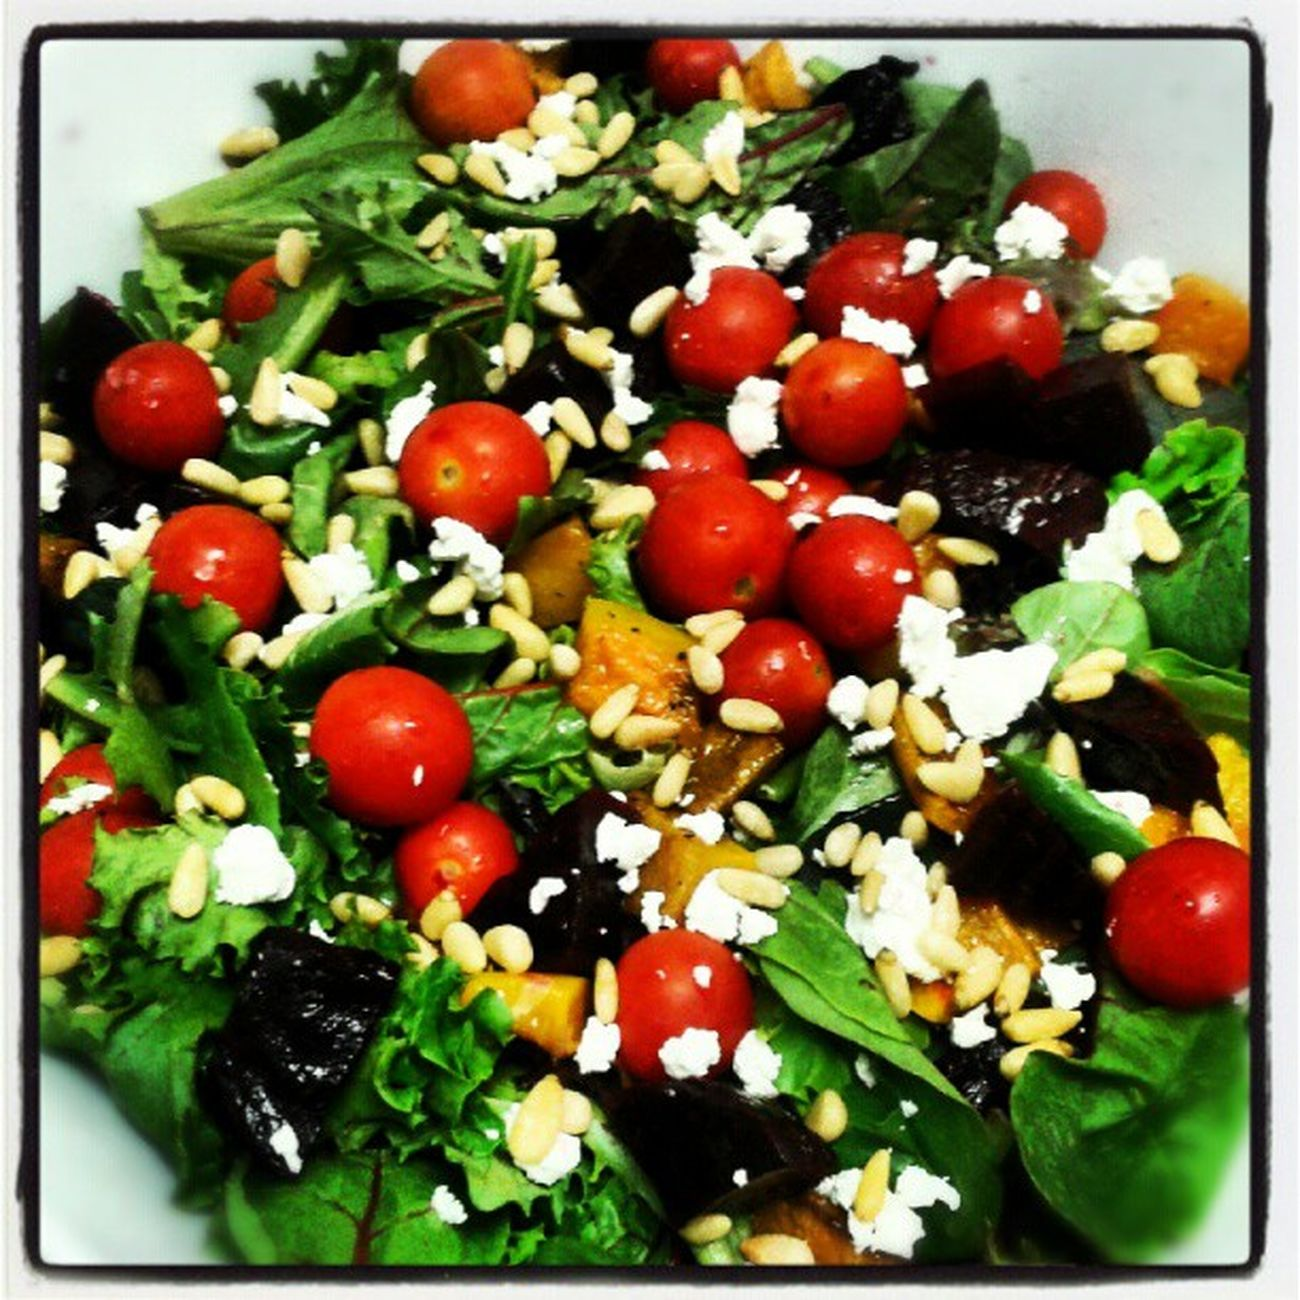 Seasonal mixed greens with organic cherry tomatoes, roasted butternut squash, fresh roasted beets, goat cheese, toasted pine nuts! Bushfiregrill